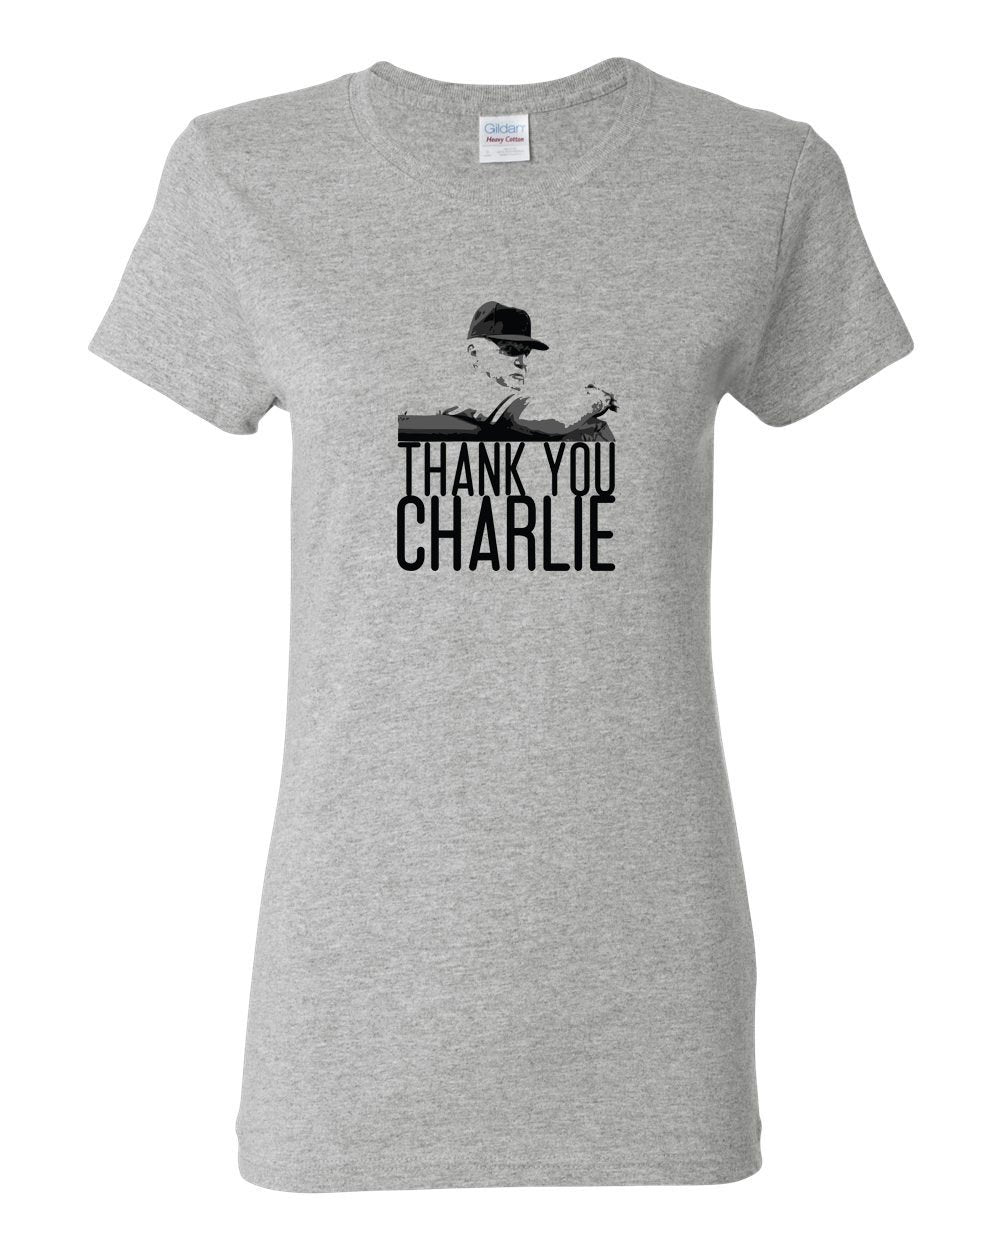 Thank You Charlie LADIES Missy-Fit T-Shirt